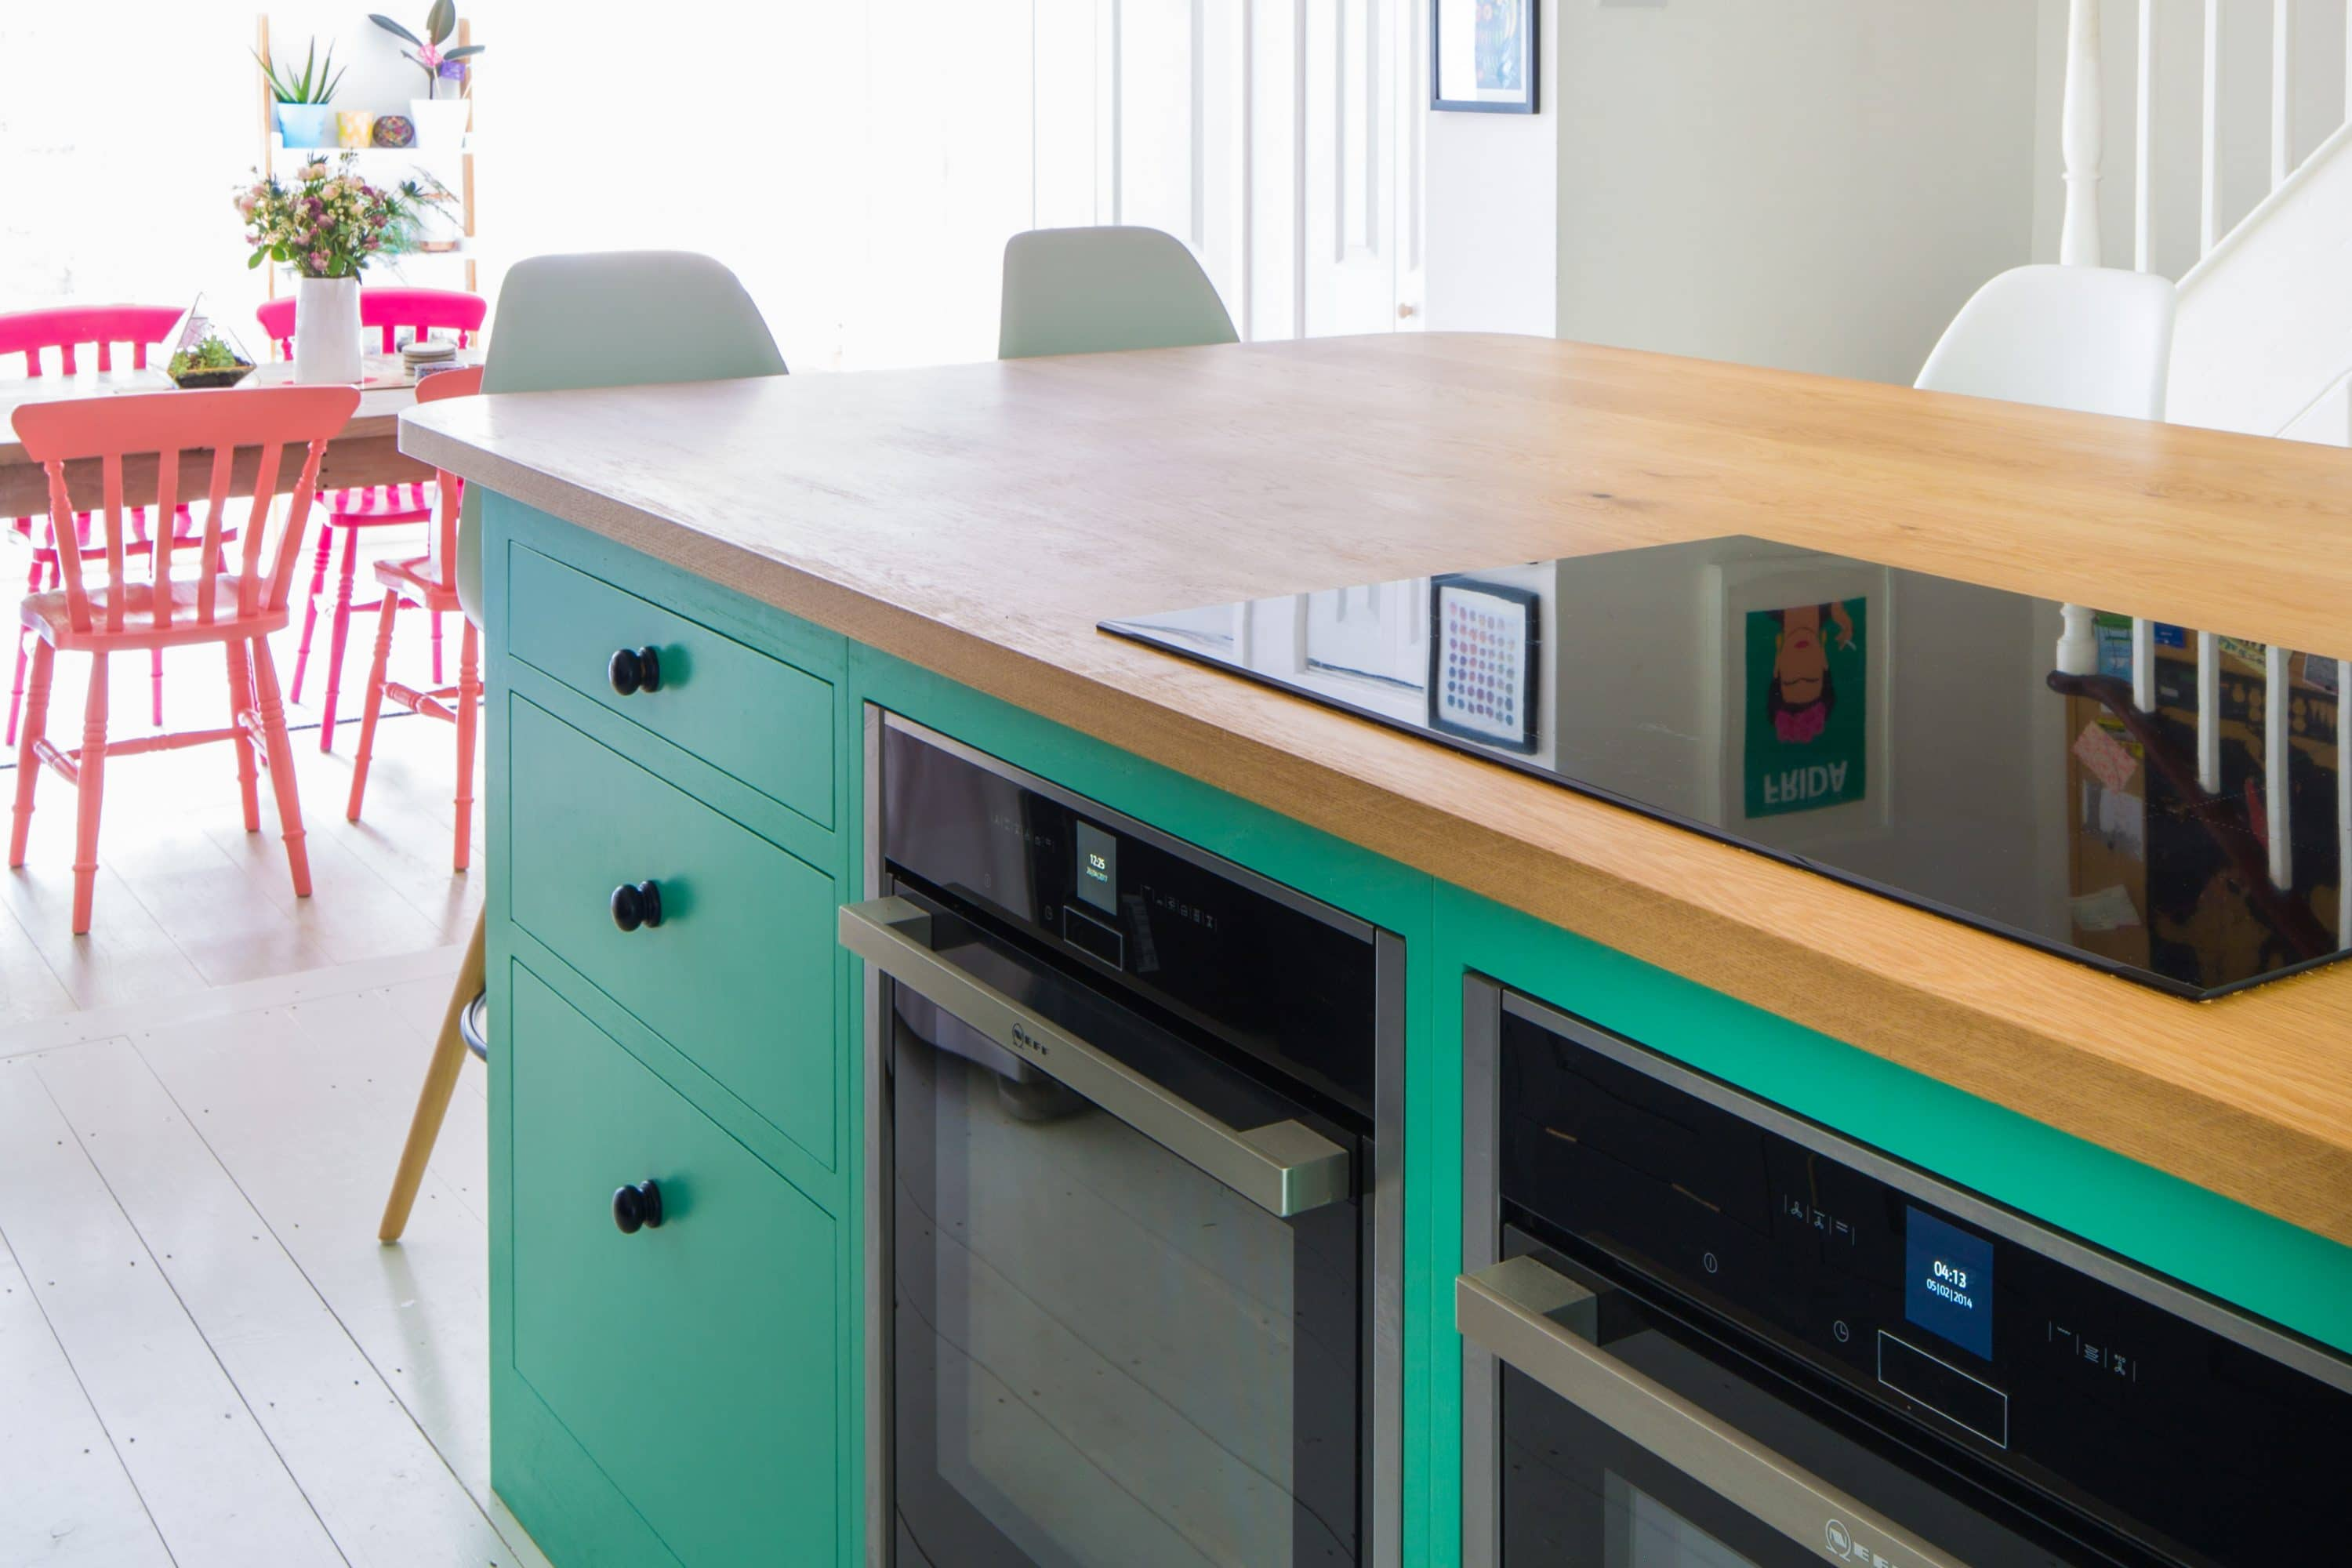 Watts Kennedy - The Colourful Fun Shaker Kitchen - Sustainable Kitchens